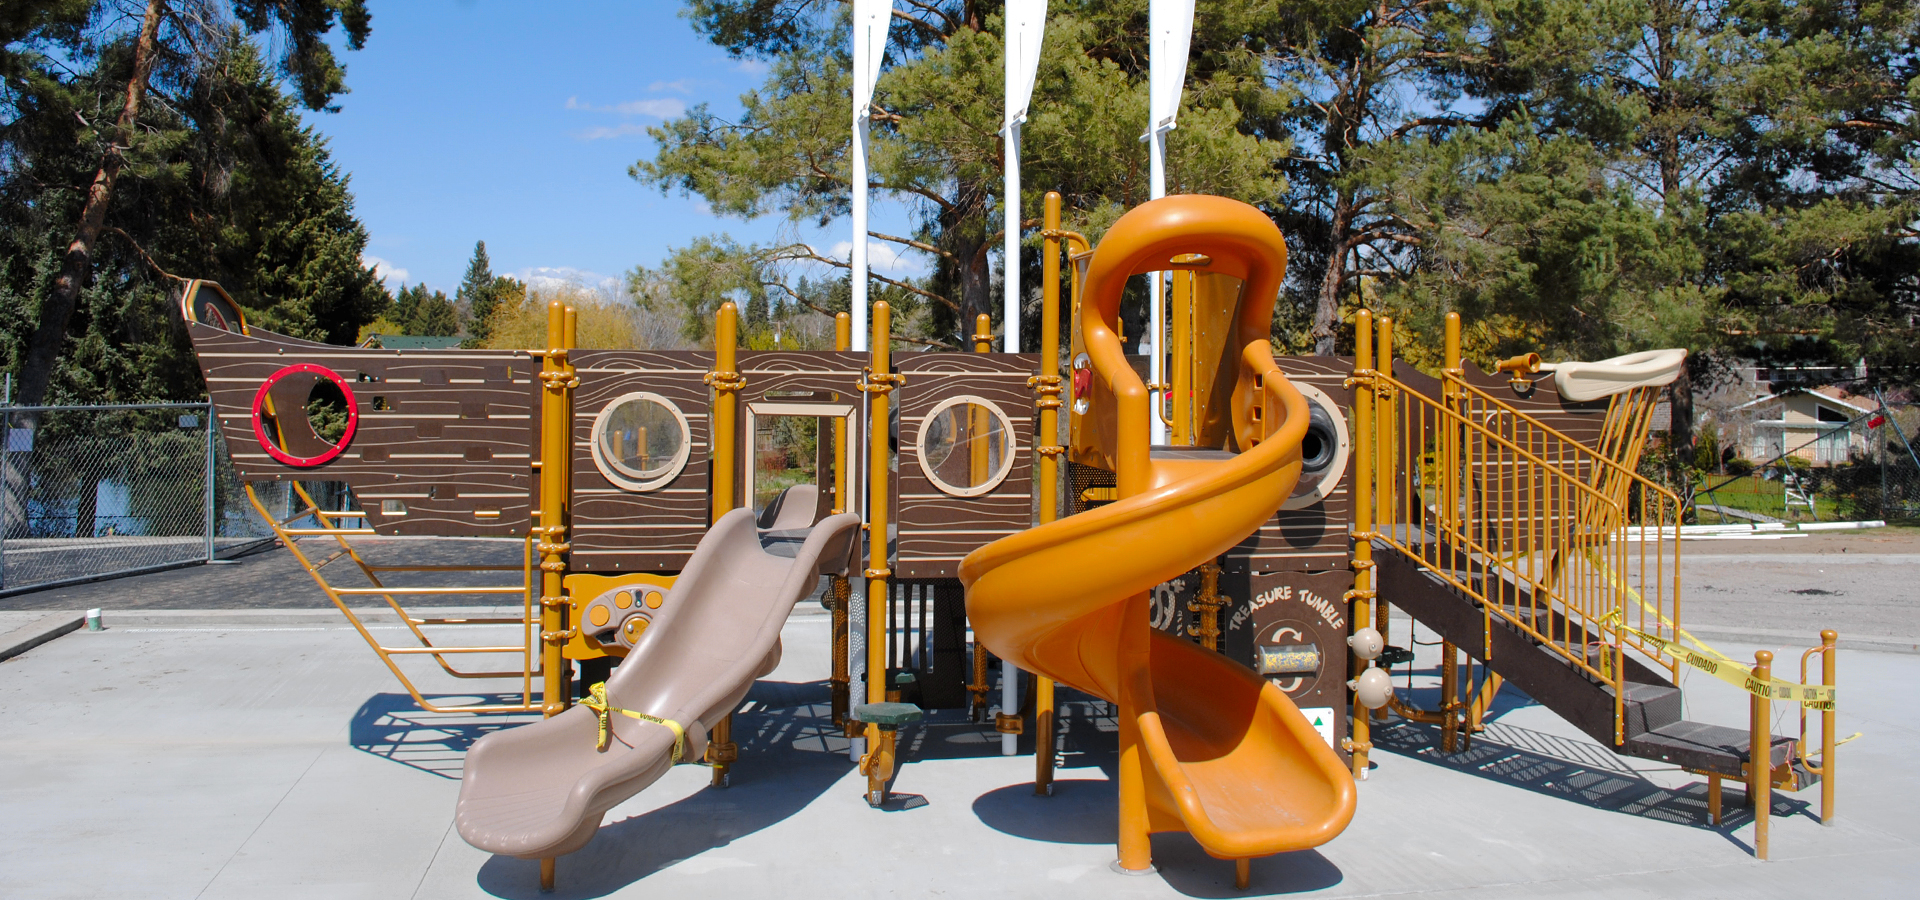 Columbia-Park-Playground-in-Bend